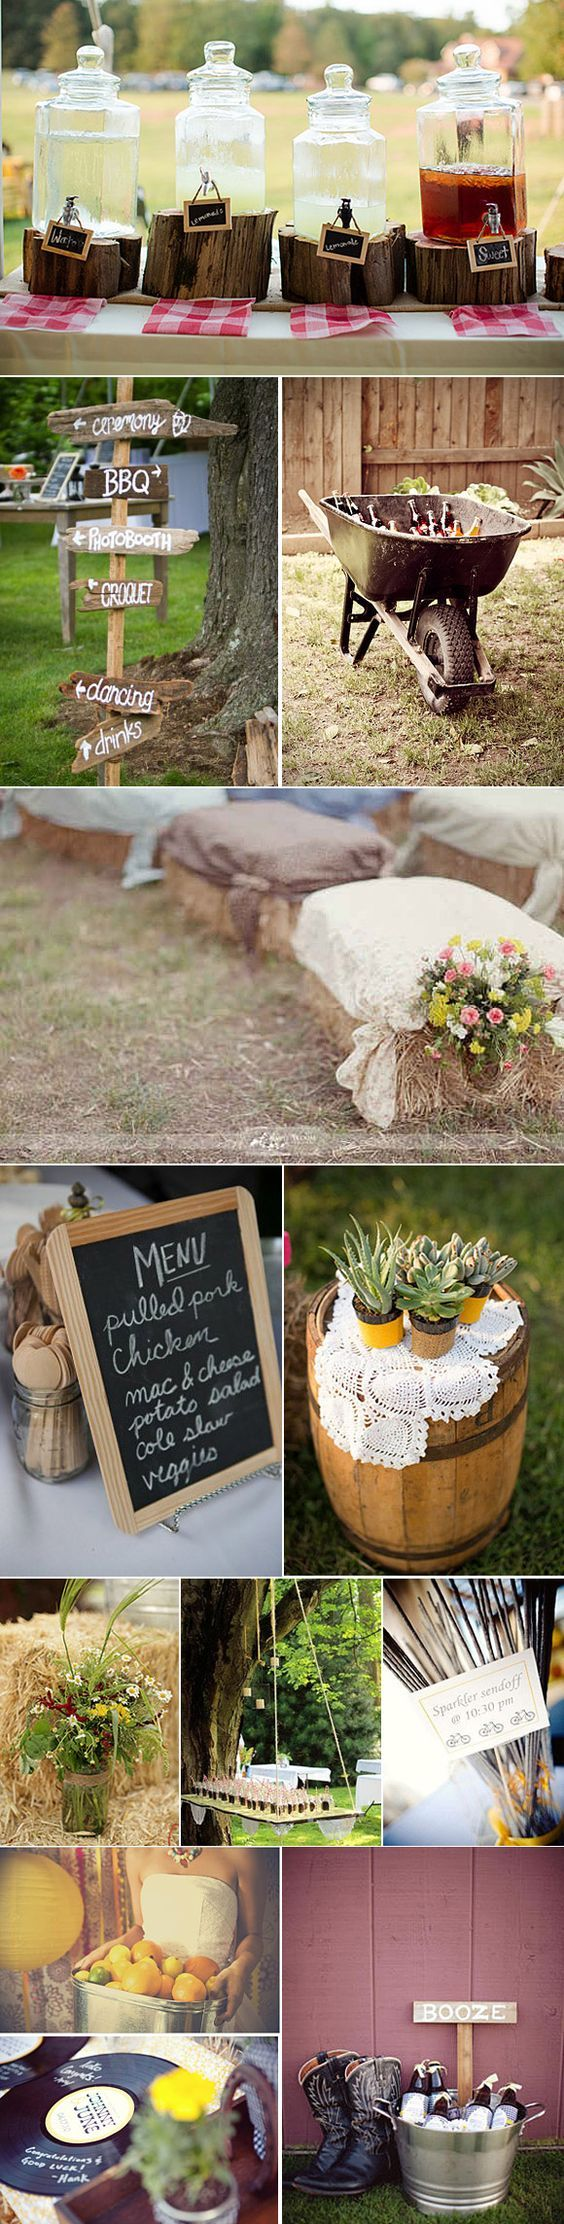 outdoor country wedding ideas pinterest outdoor country wedding